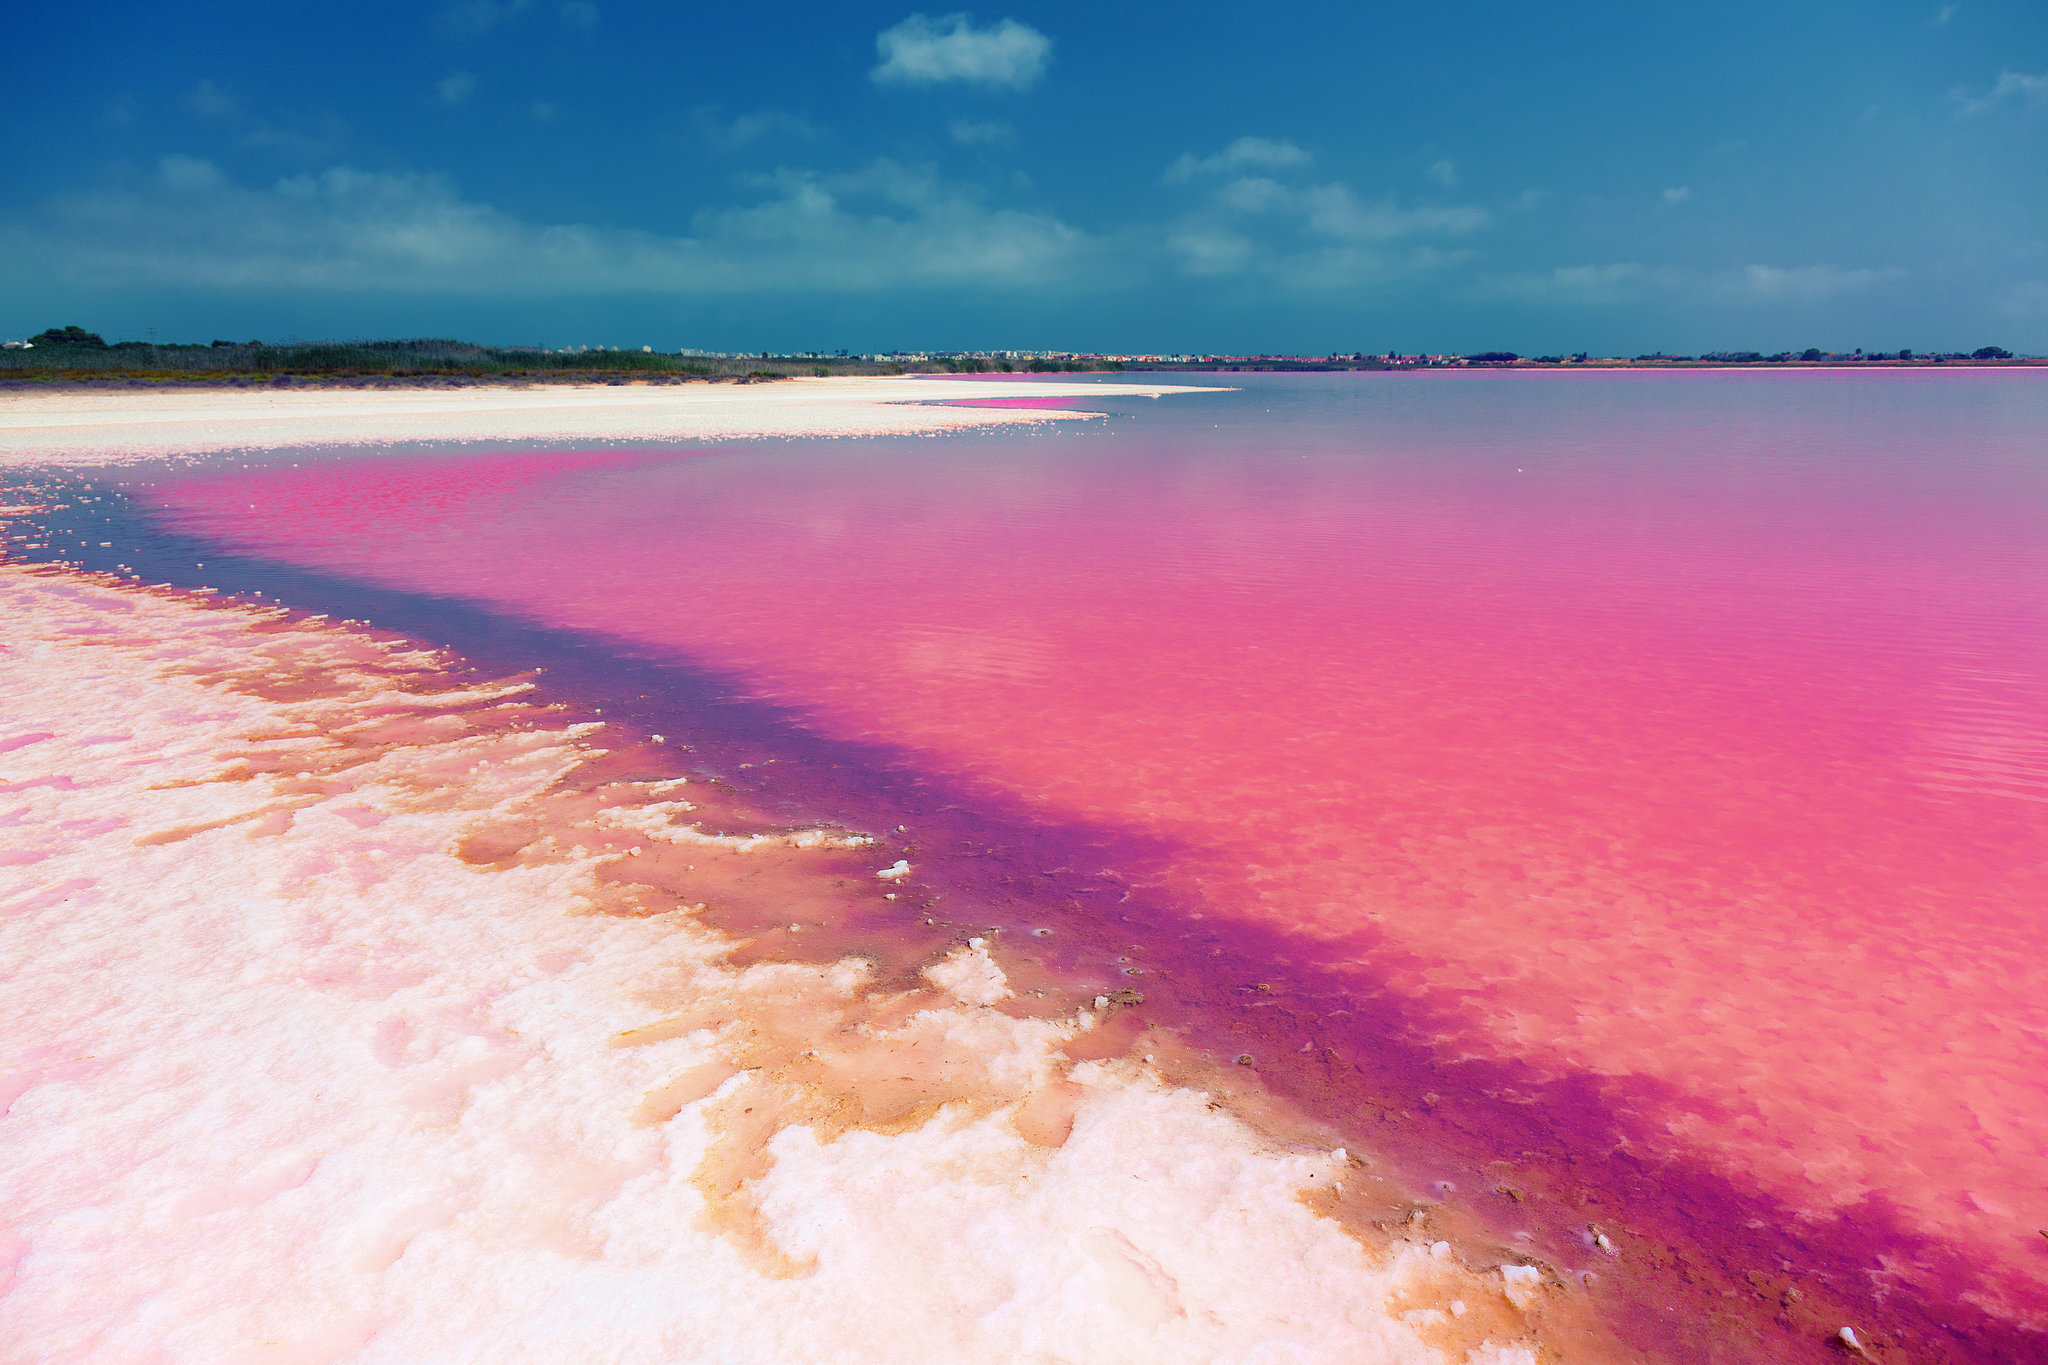 Admire the Pink Hues of Laguna Salada de Torrevieja in Spain